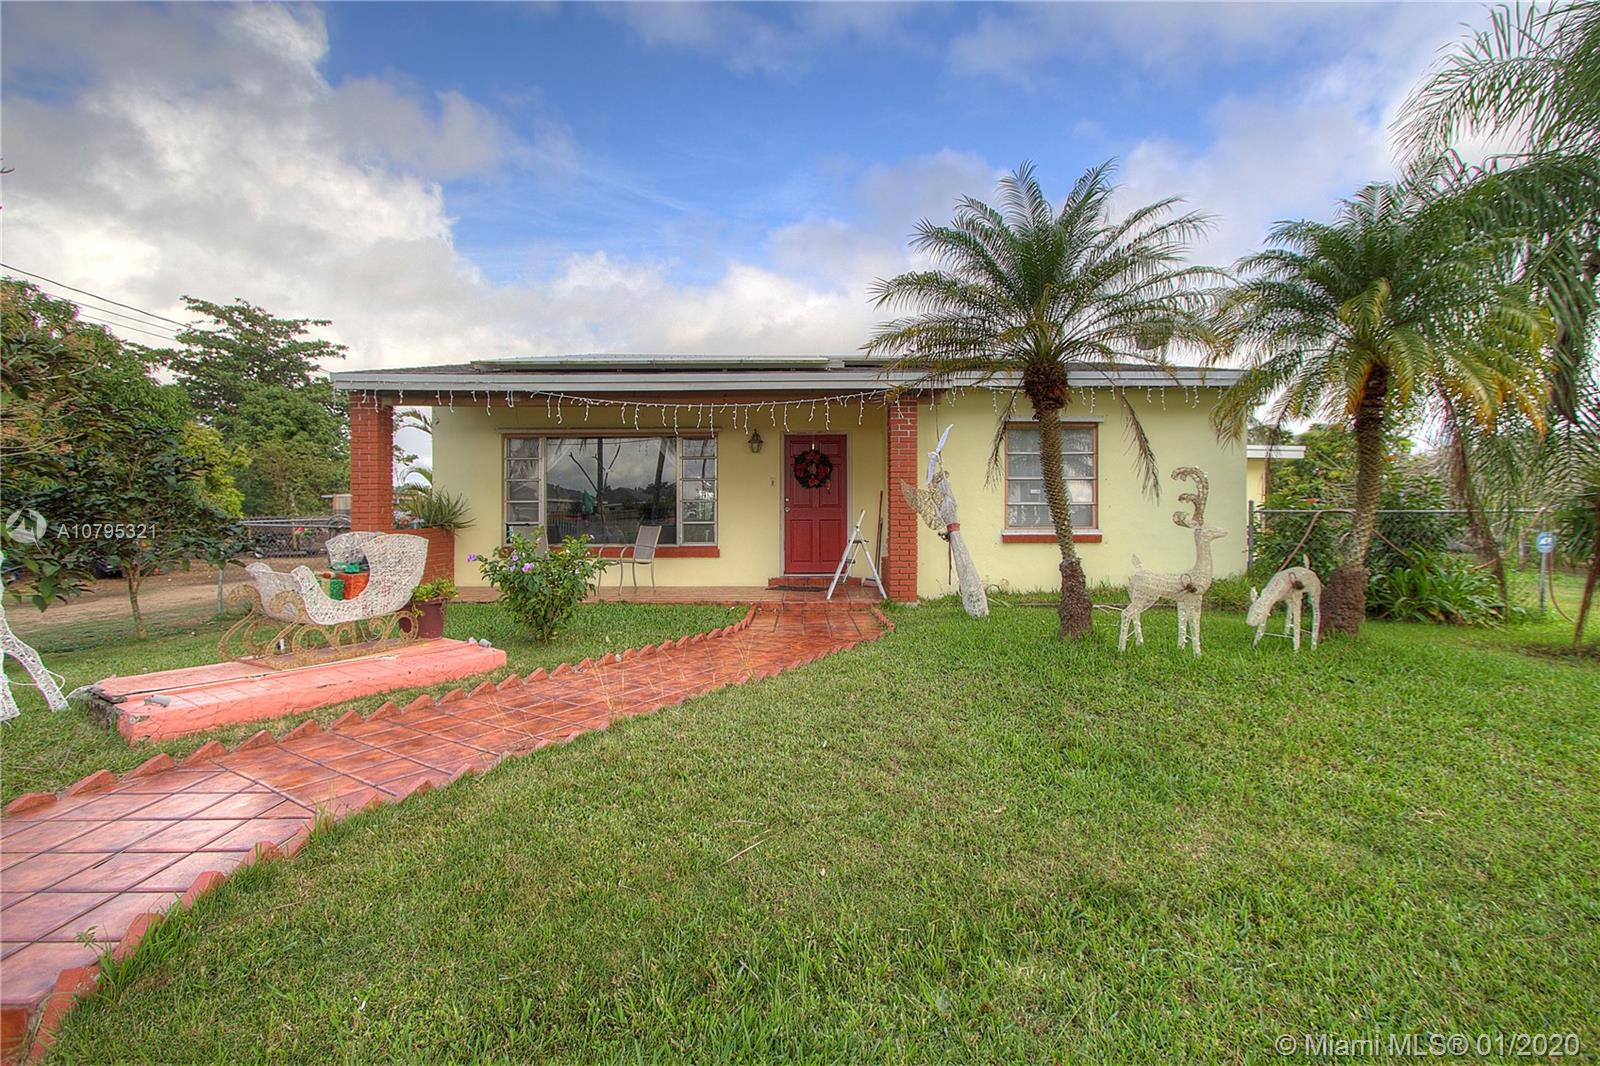 19125 SW 316th St, Homestead, FL 33030 - Homestead, FL real estate listing